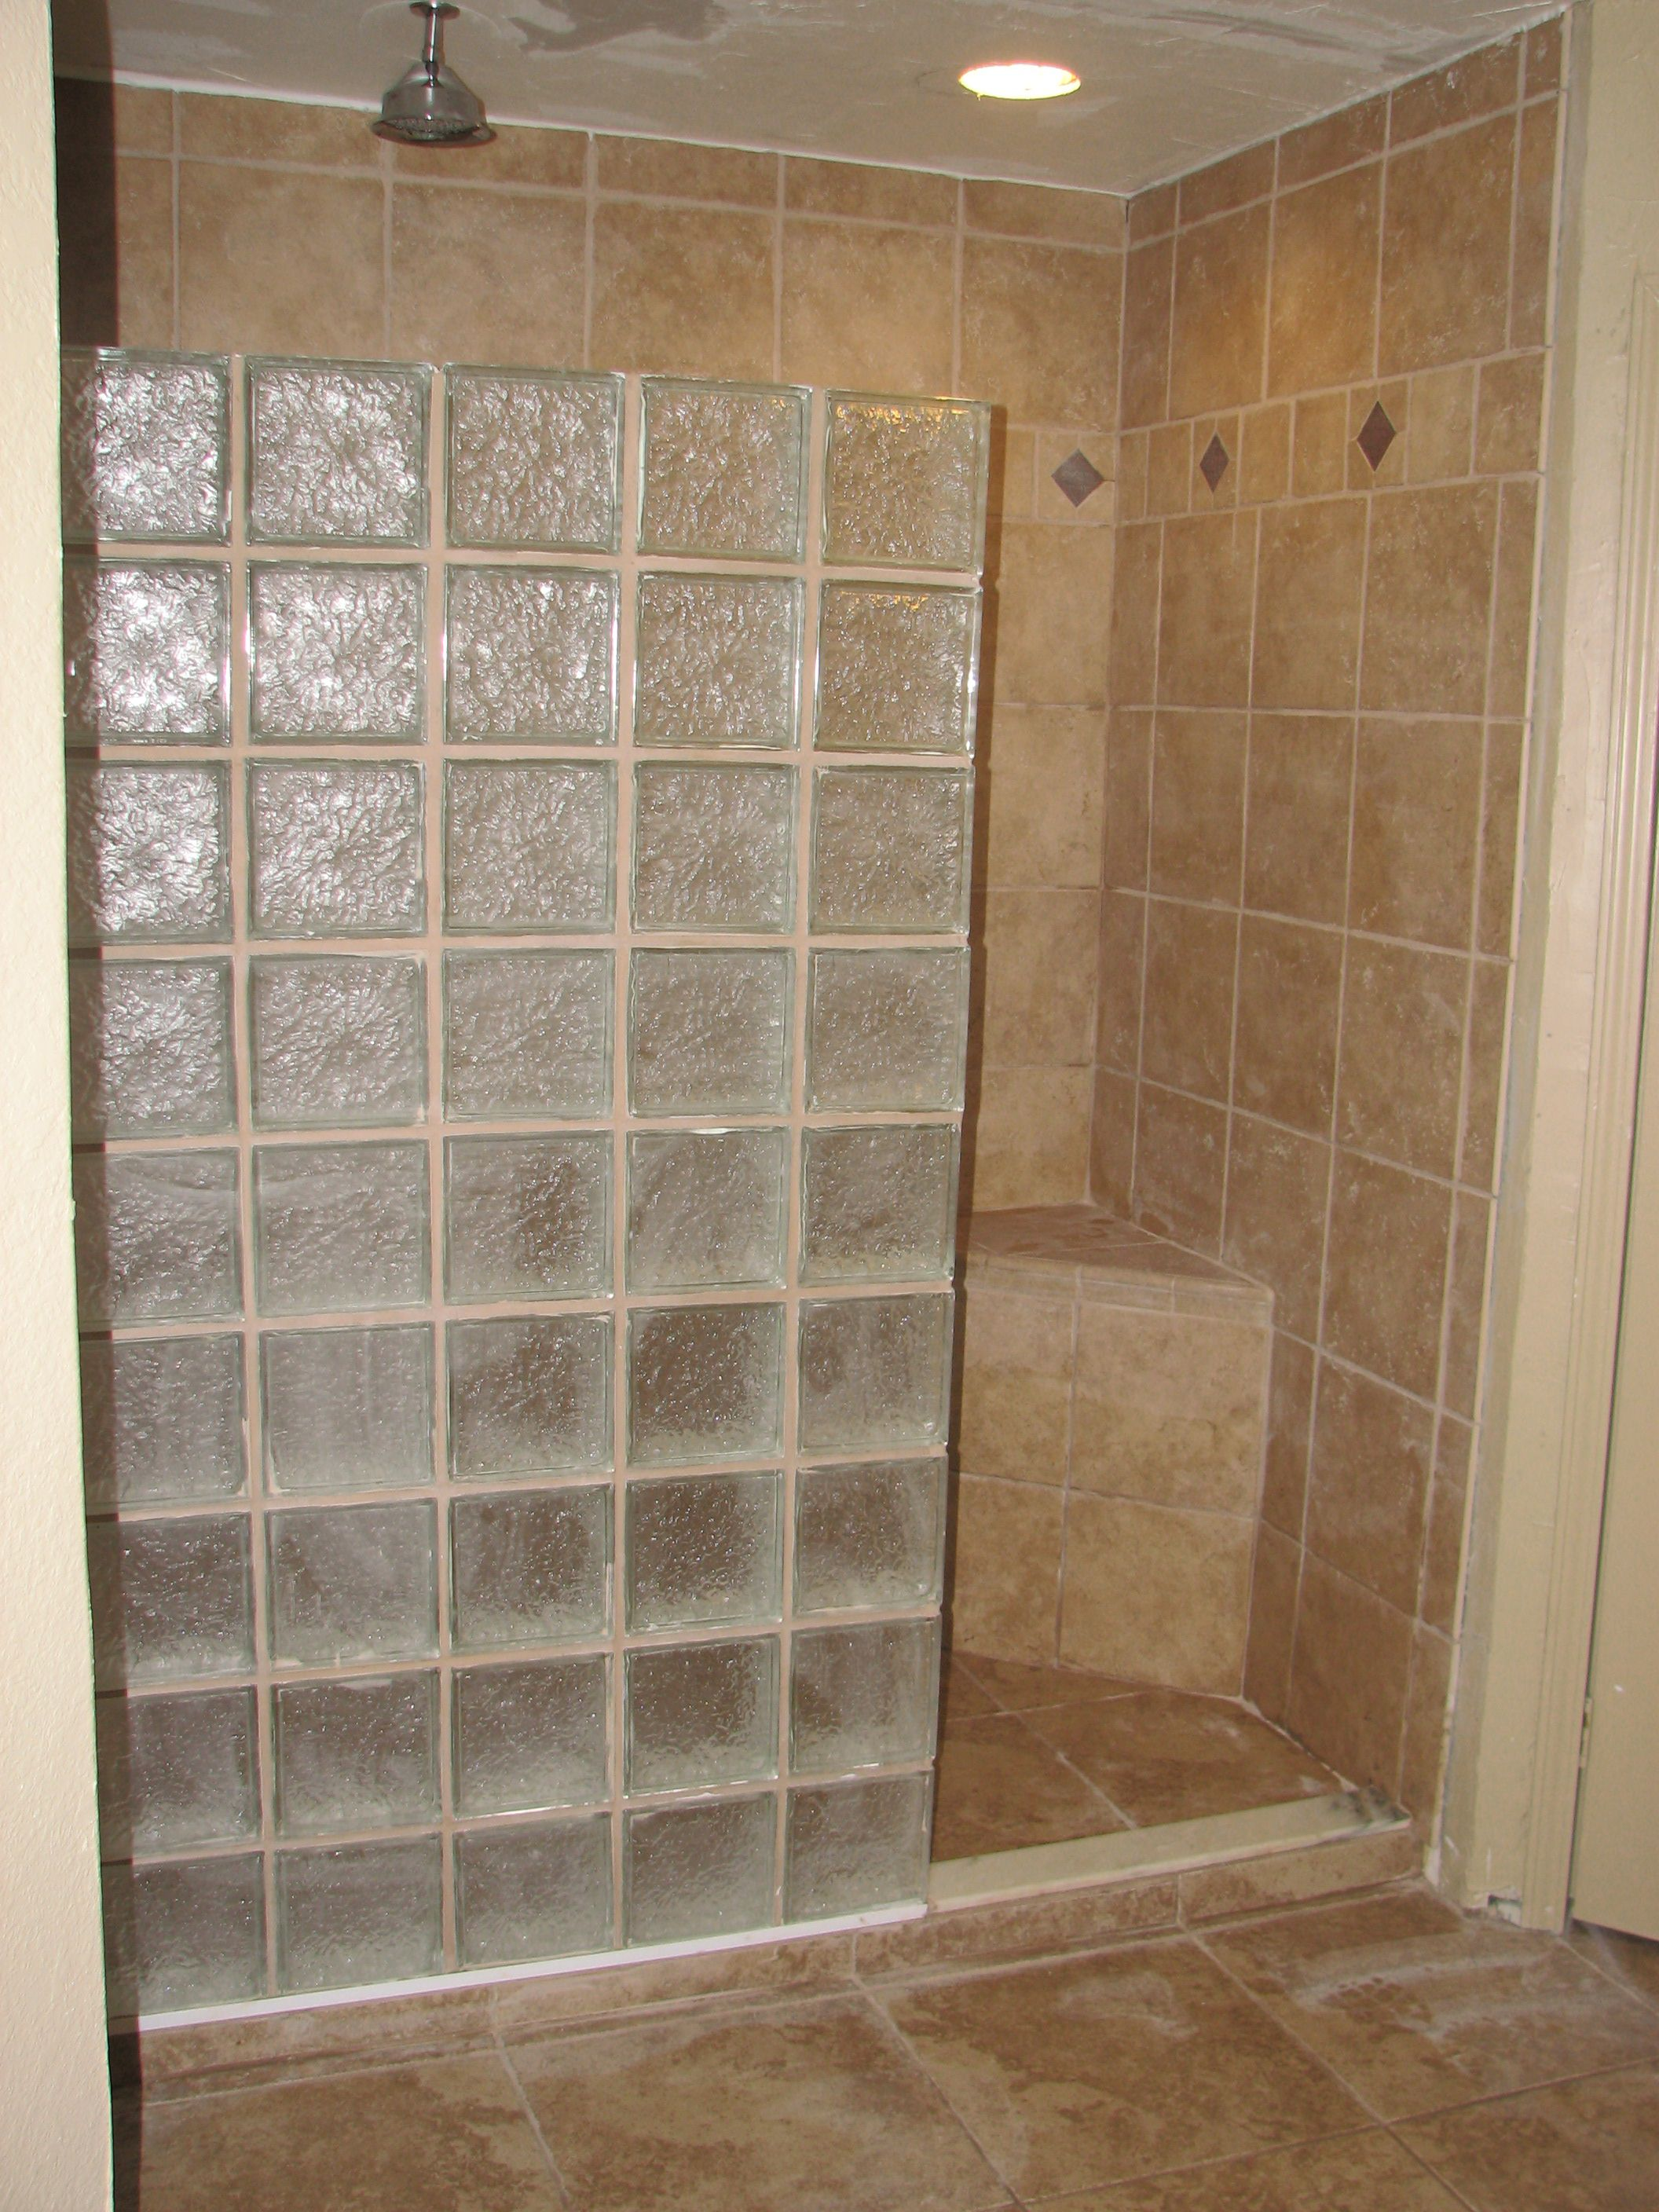 Bathroom Small Bathroom Remodeling Bathroom Remodel Construction And Handyman Services Shop Small Network Bathroom Renovations Ideas Bathroom Renovations